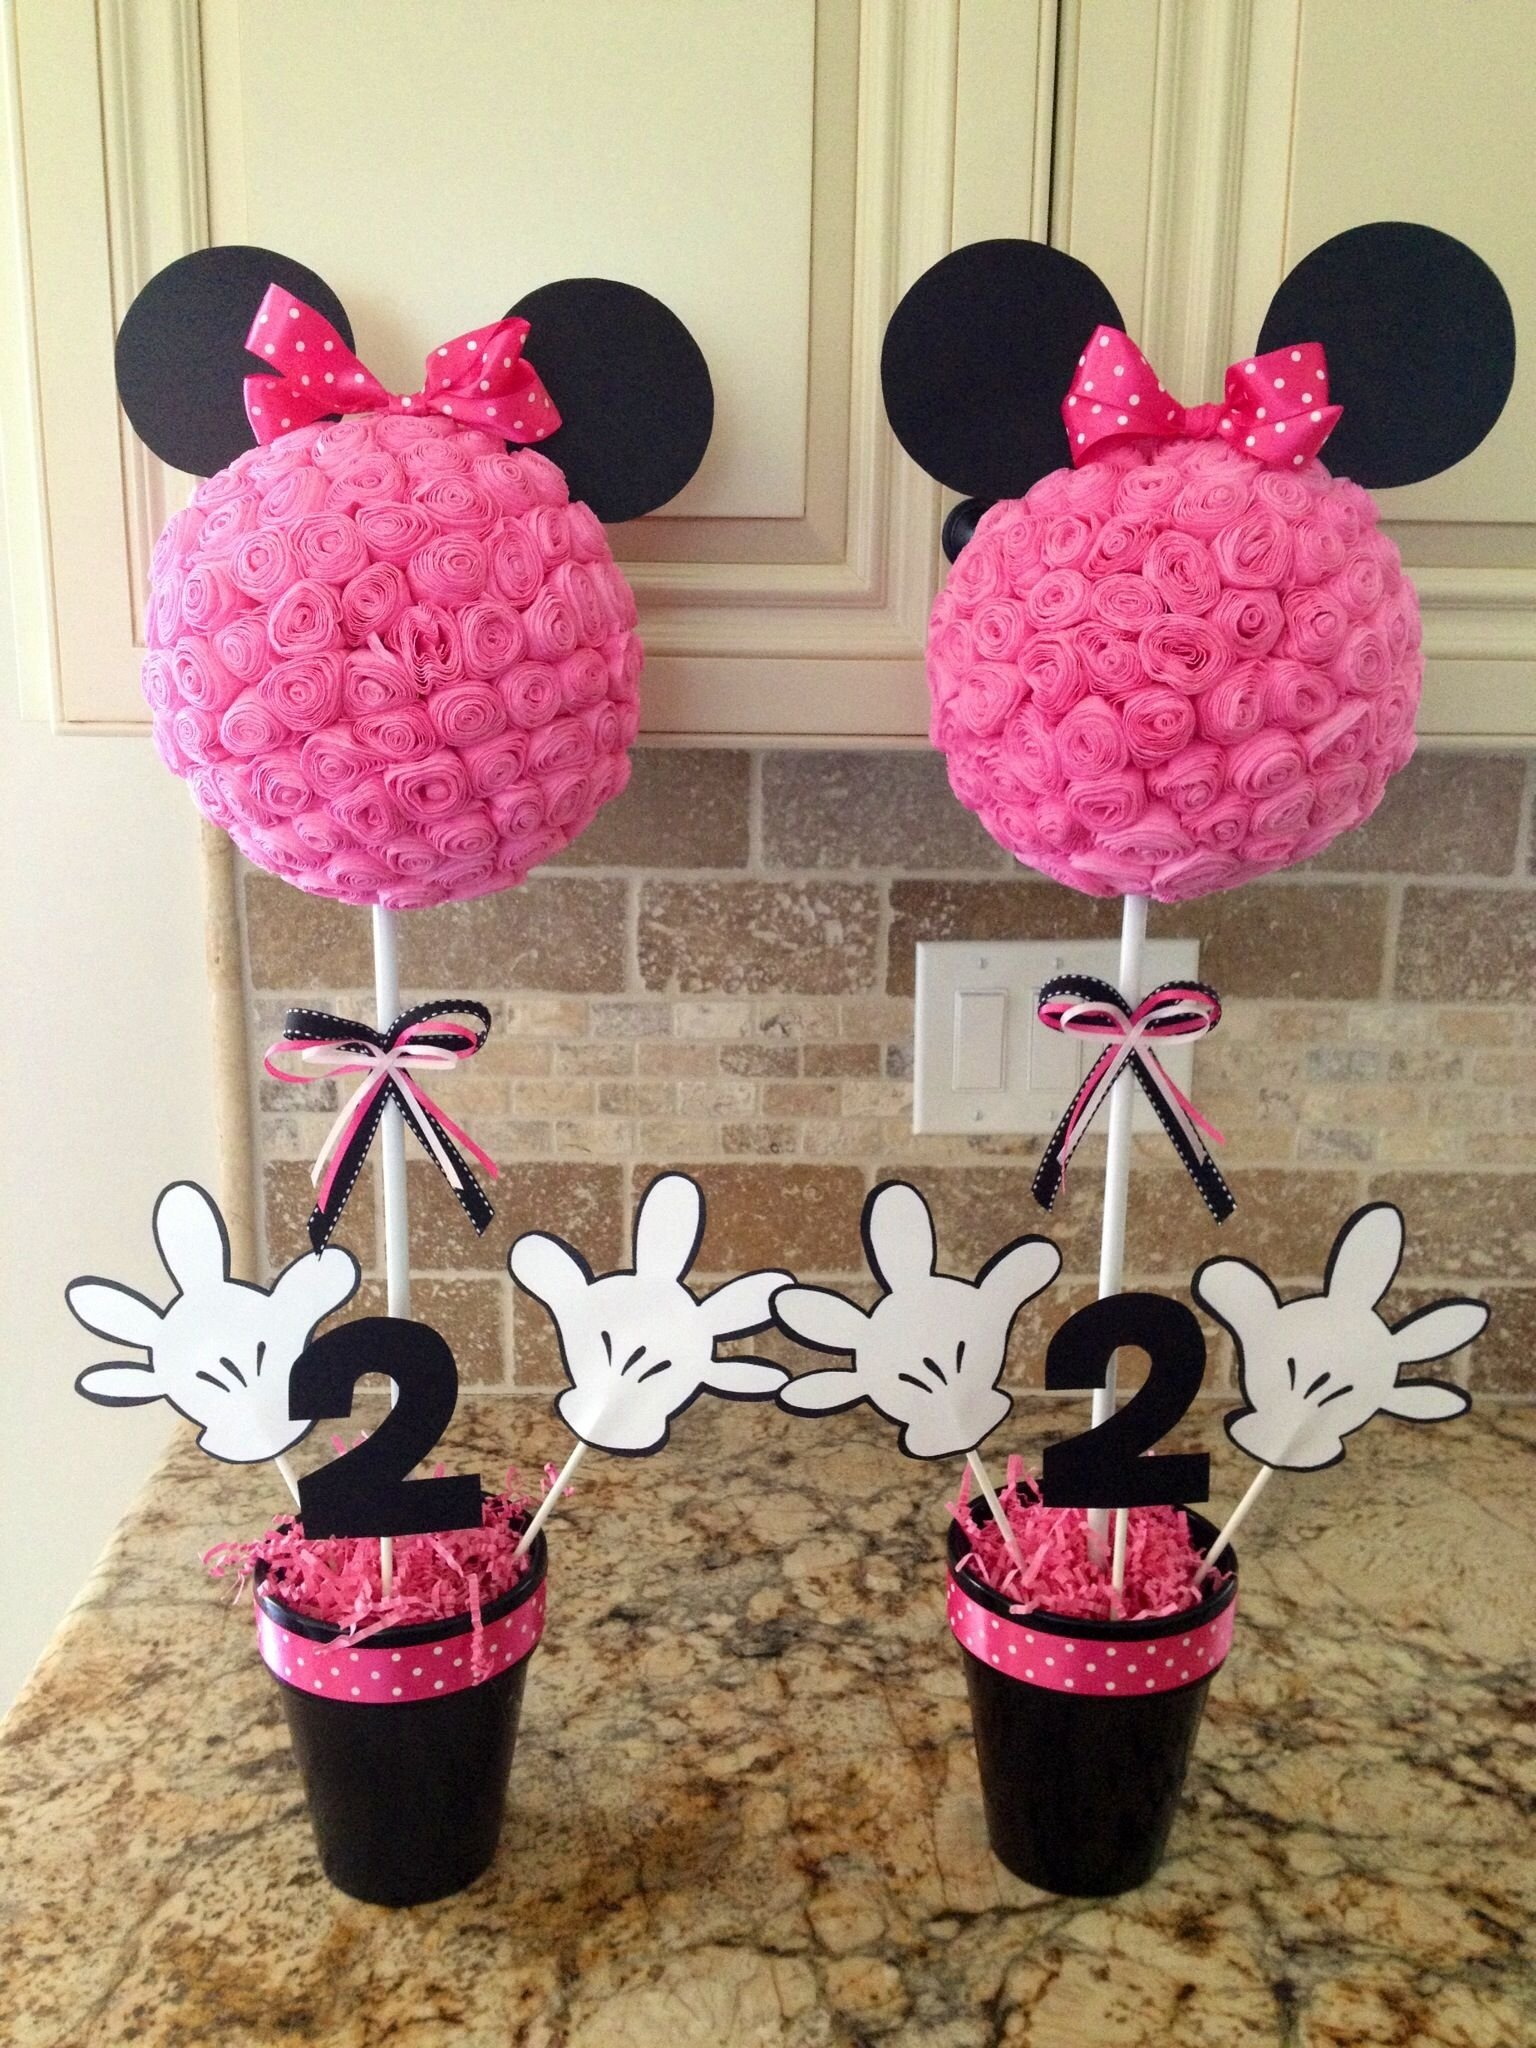 10 Most Popular Minnie Mouse 2Nd Birthday Party Ideas minnie mouse centerpieces minnie mouse pinterest minnie mouse 5